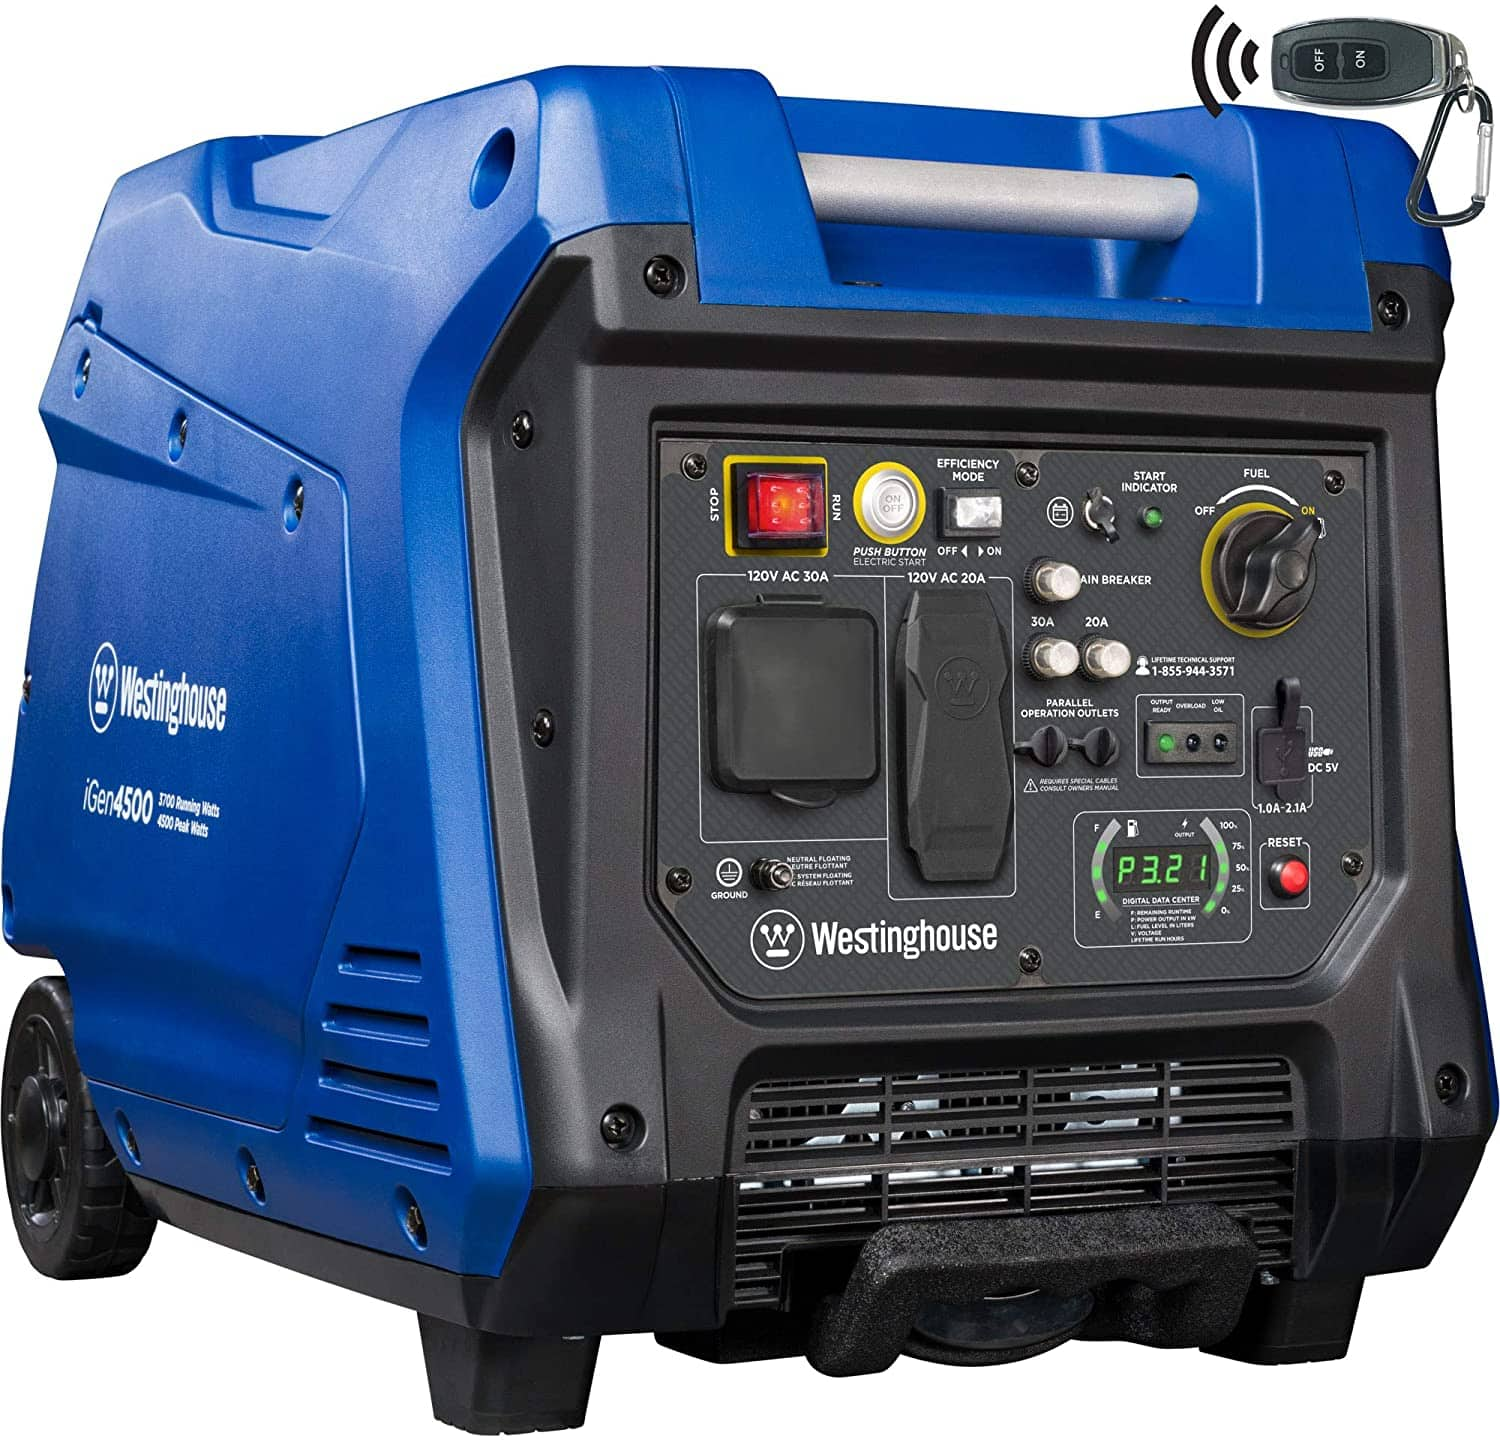 Westinghouse iGen4500 Super Quiet Portable Inverter Generator - 3700 Rated Watts and 4500 Peak Watts - Gas Powered - CARB Compliant, remote start $750.60